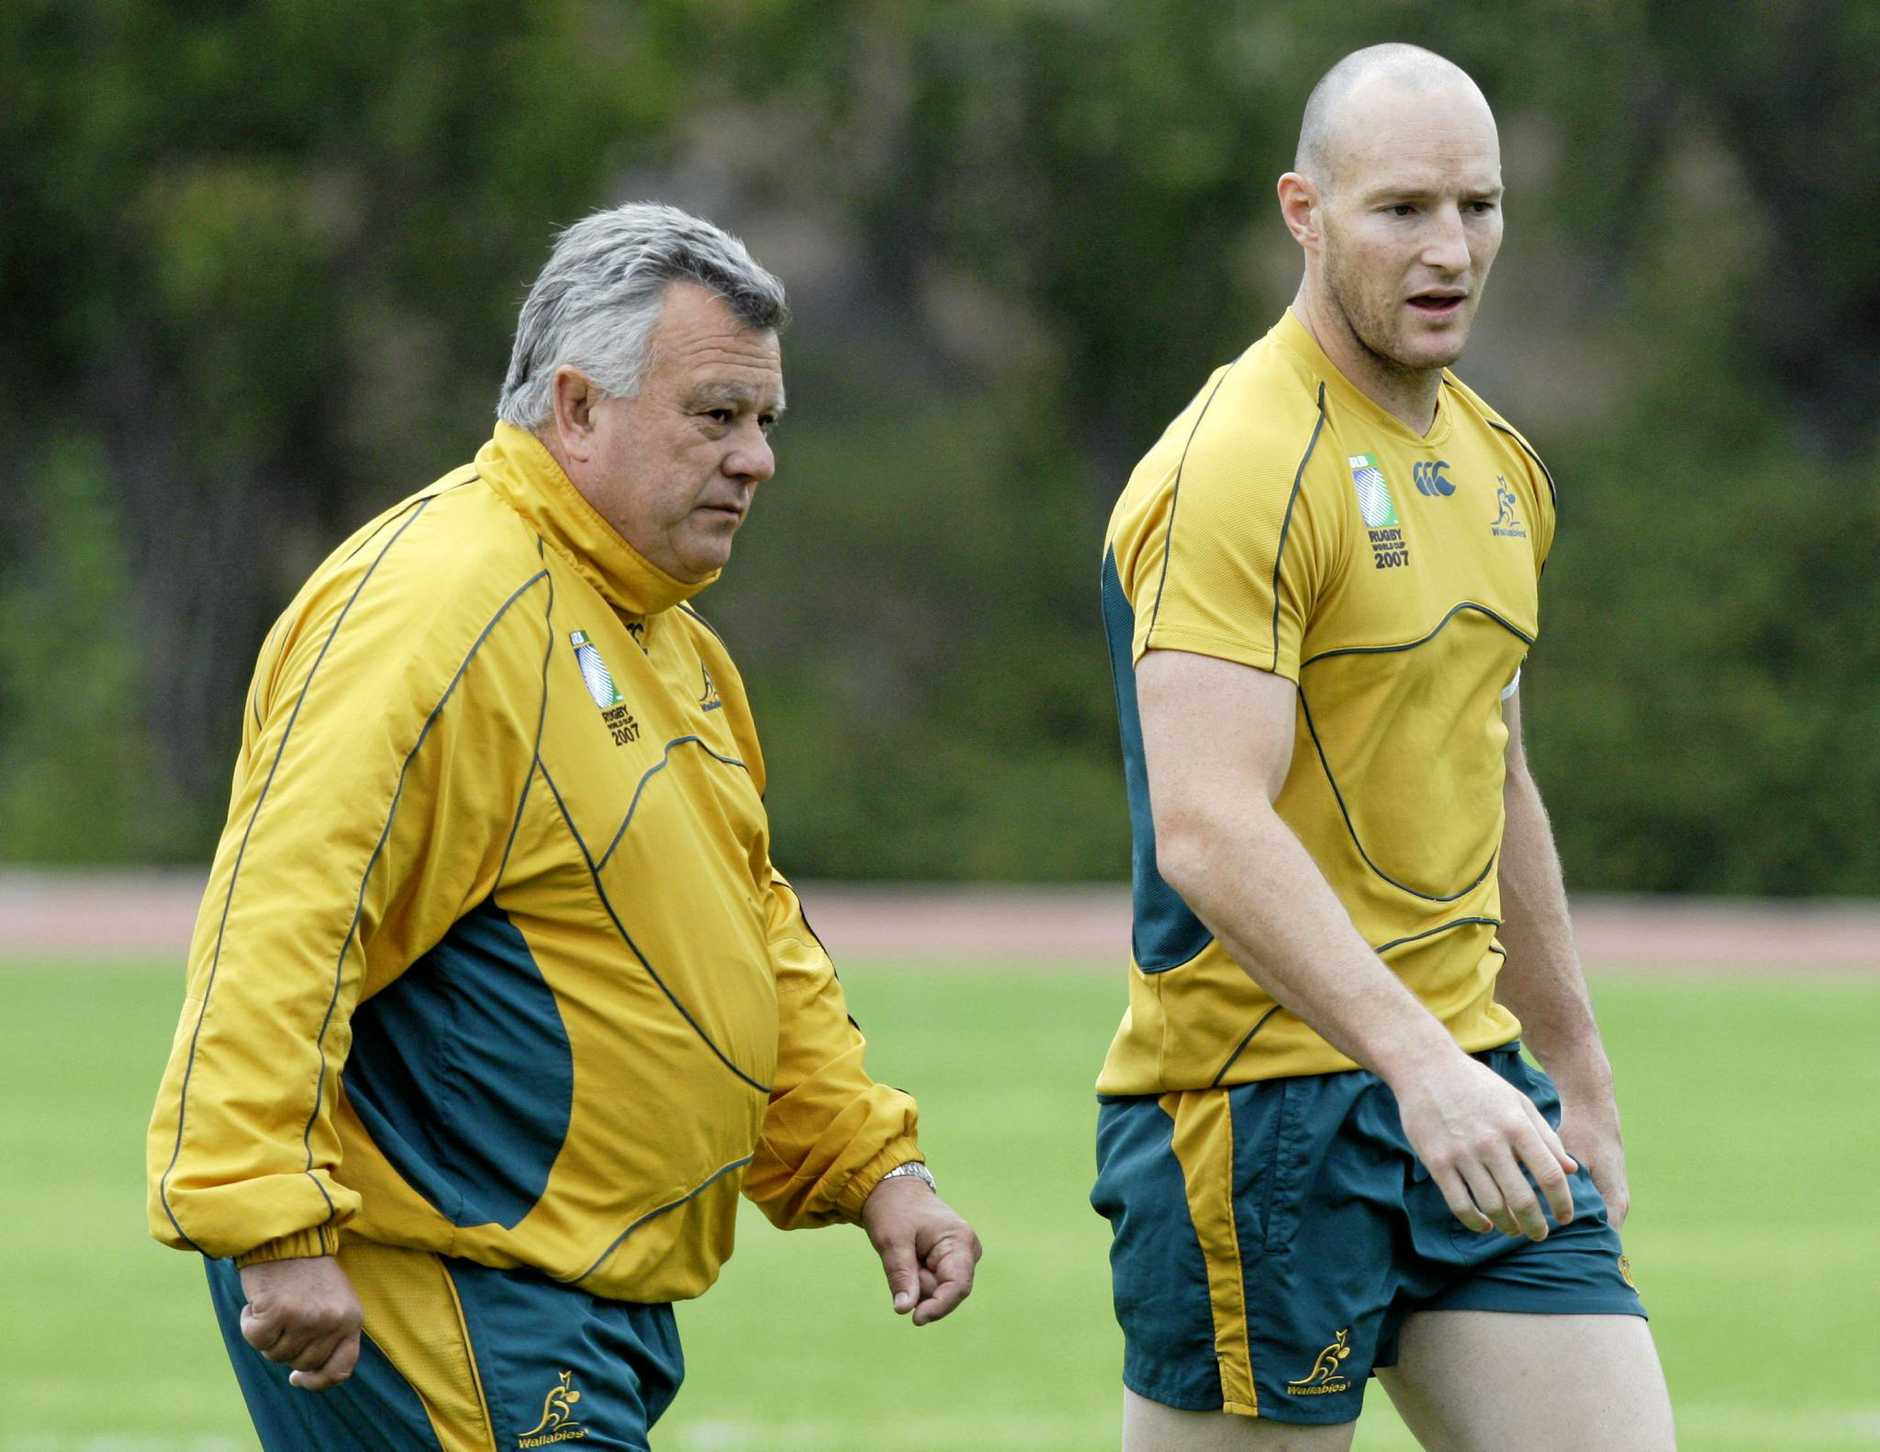 FLASHBACK: Australian team coach John Connolly left, walks with captain Stirling Mortlock during a team training session at Stade Luminy in Marseille, southern France, Friday Oct 5, 2007.